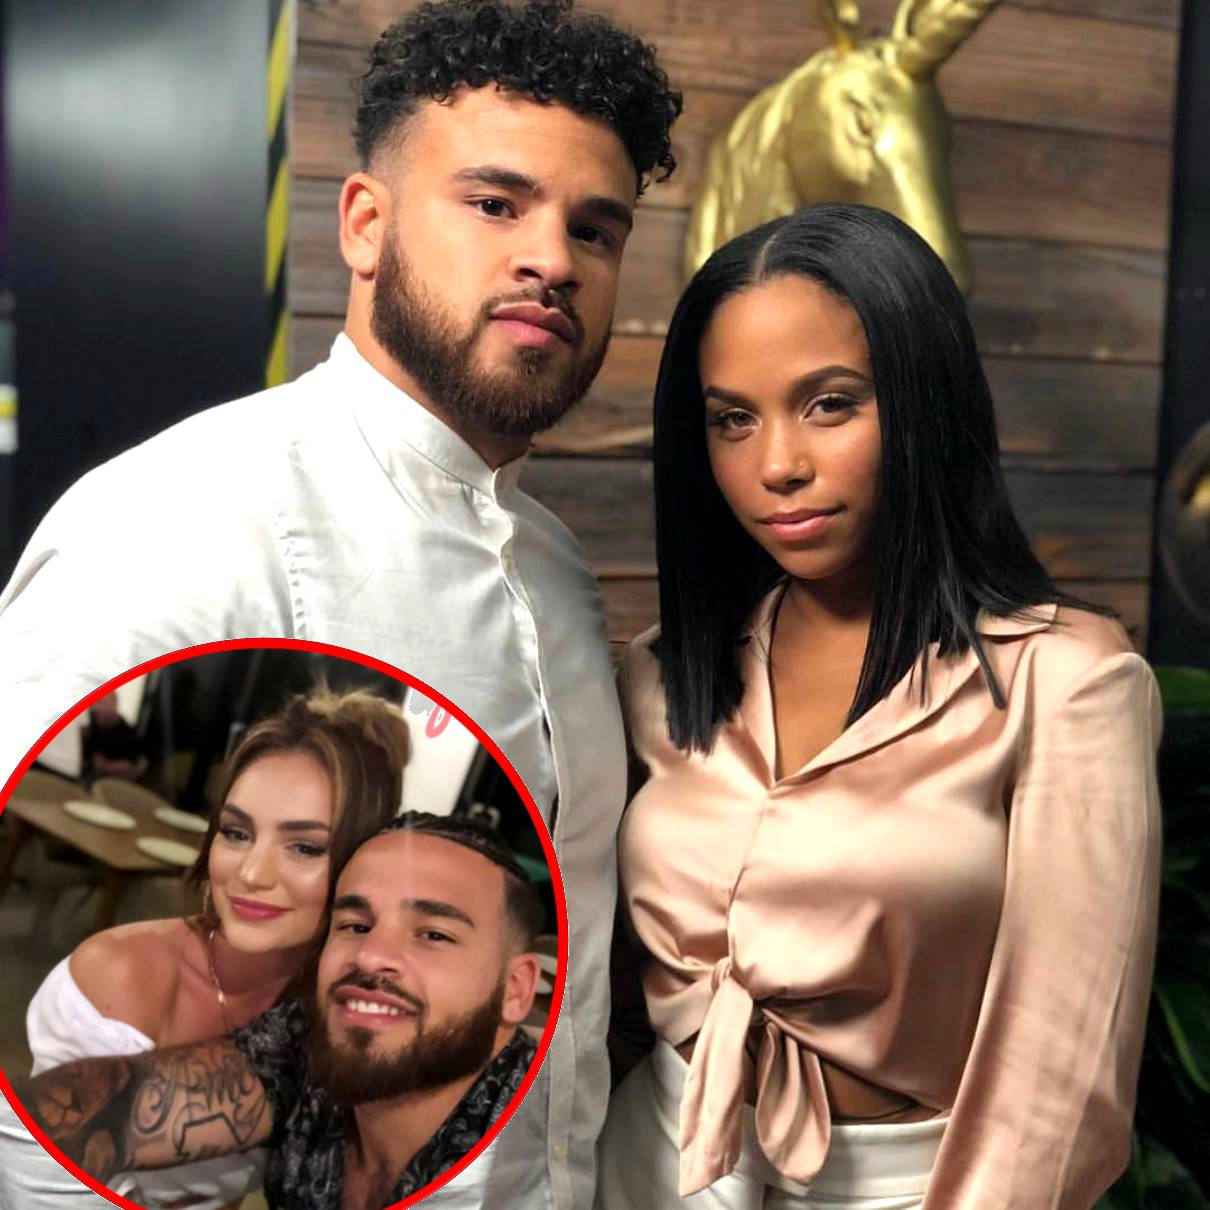 Teen Mom OG's Cheyenne Floyd Reacts to Cory Wharton's New Girlfriend